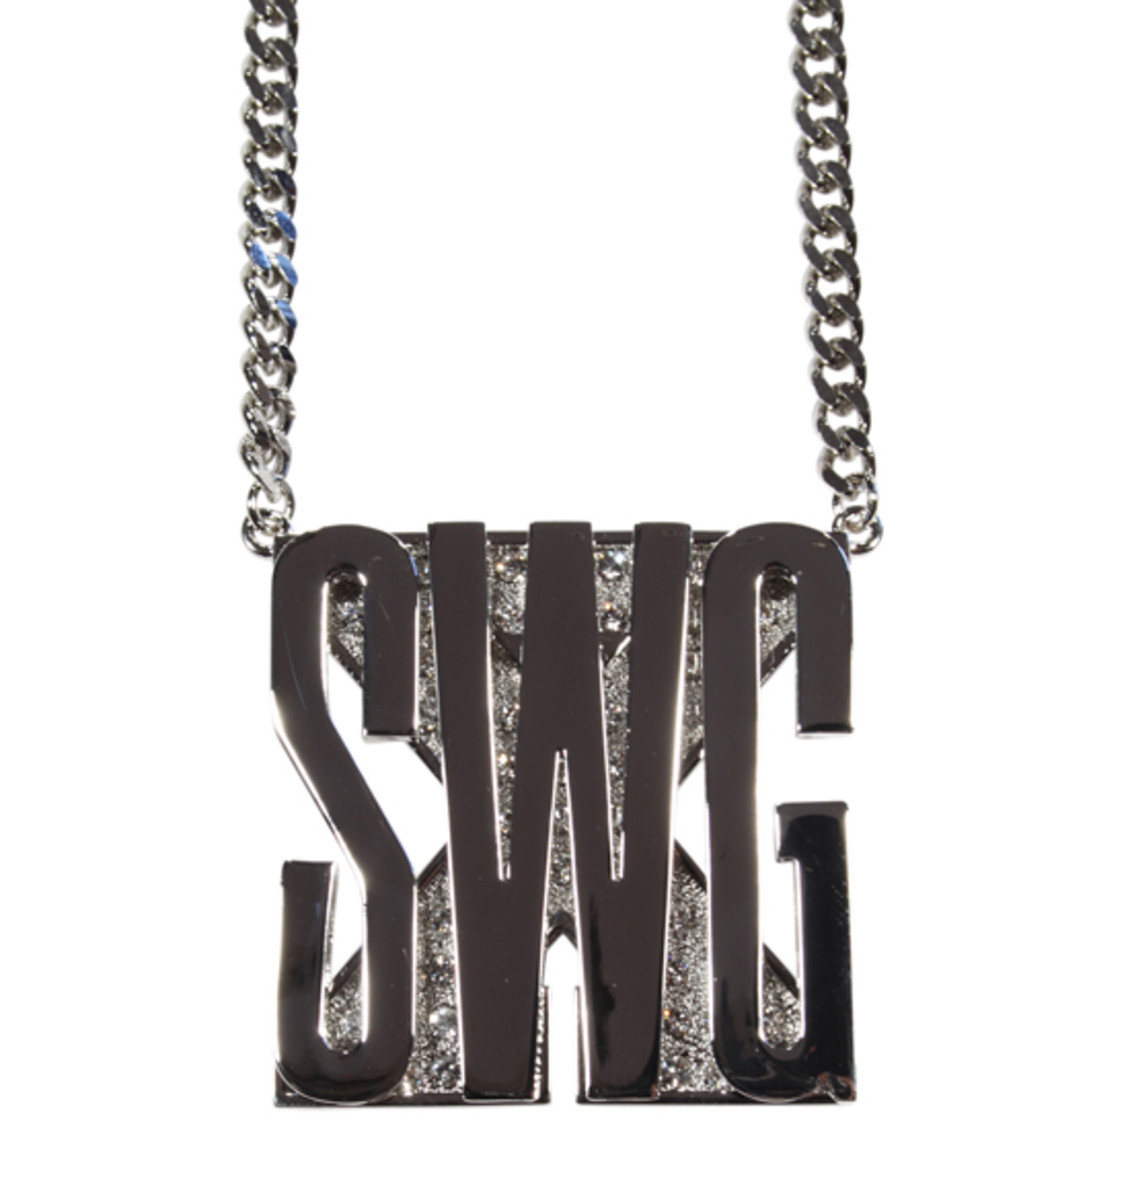 swg-x_necklace_1